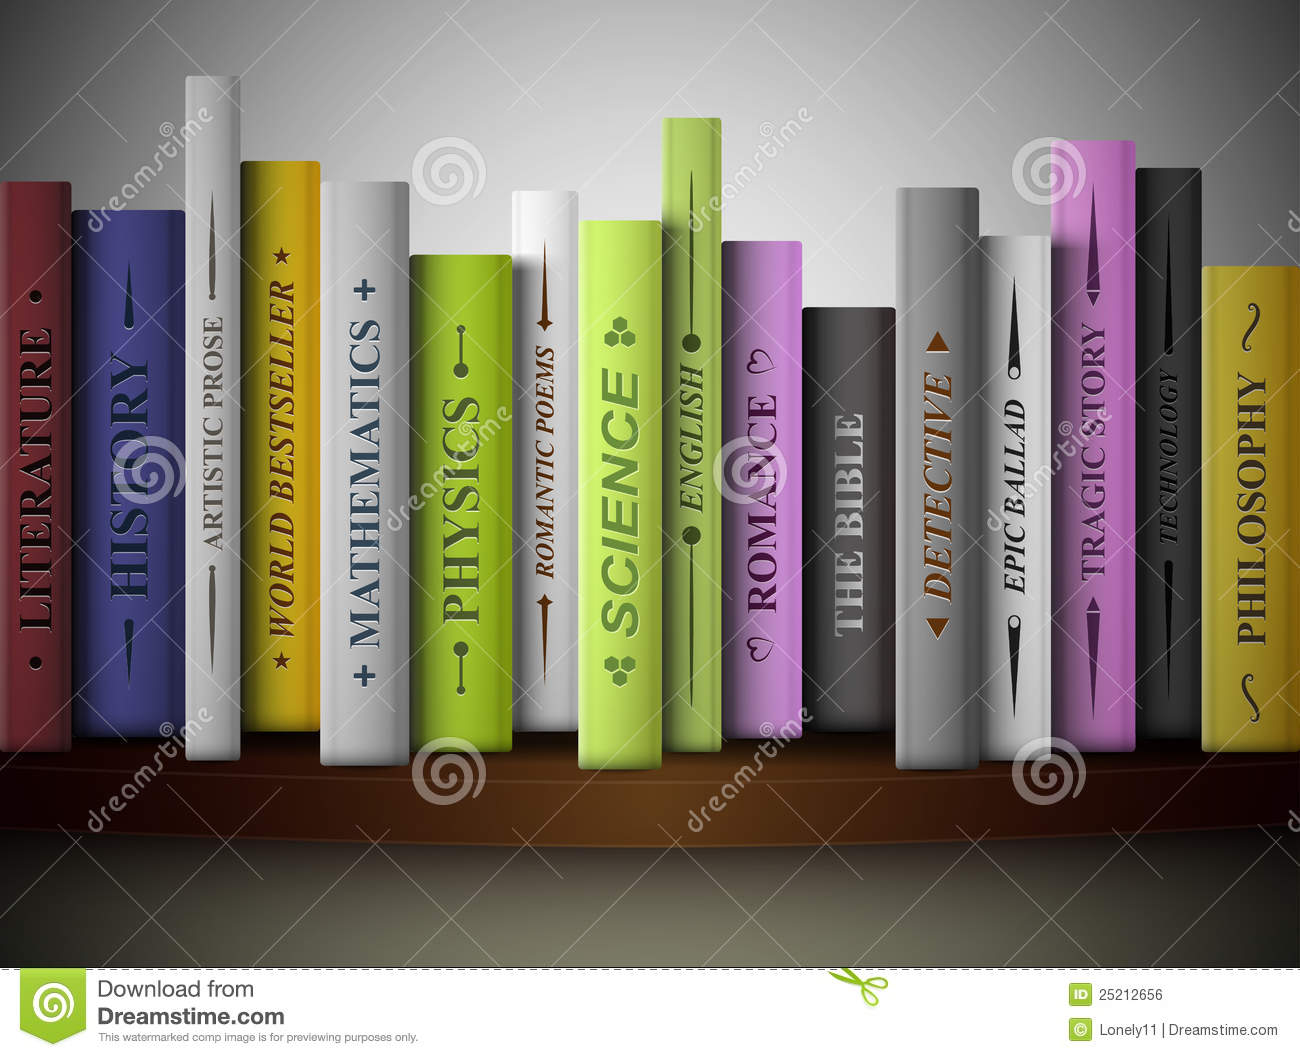 Books On Shelf Royalty Free Stock Image - Image: 25212656